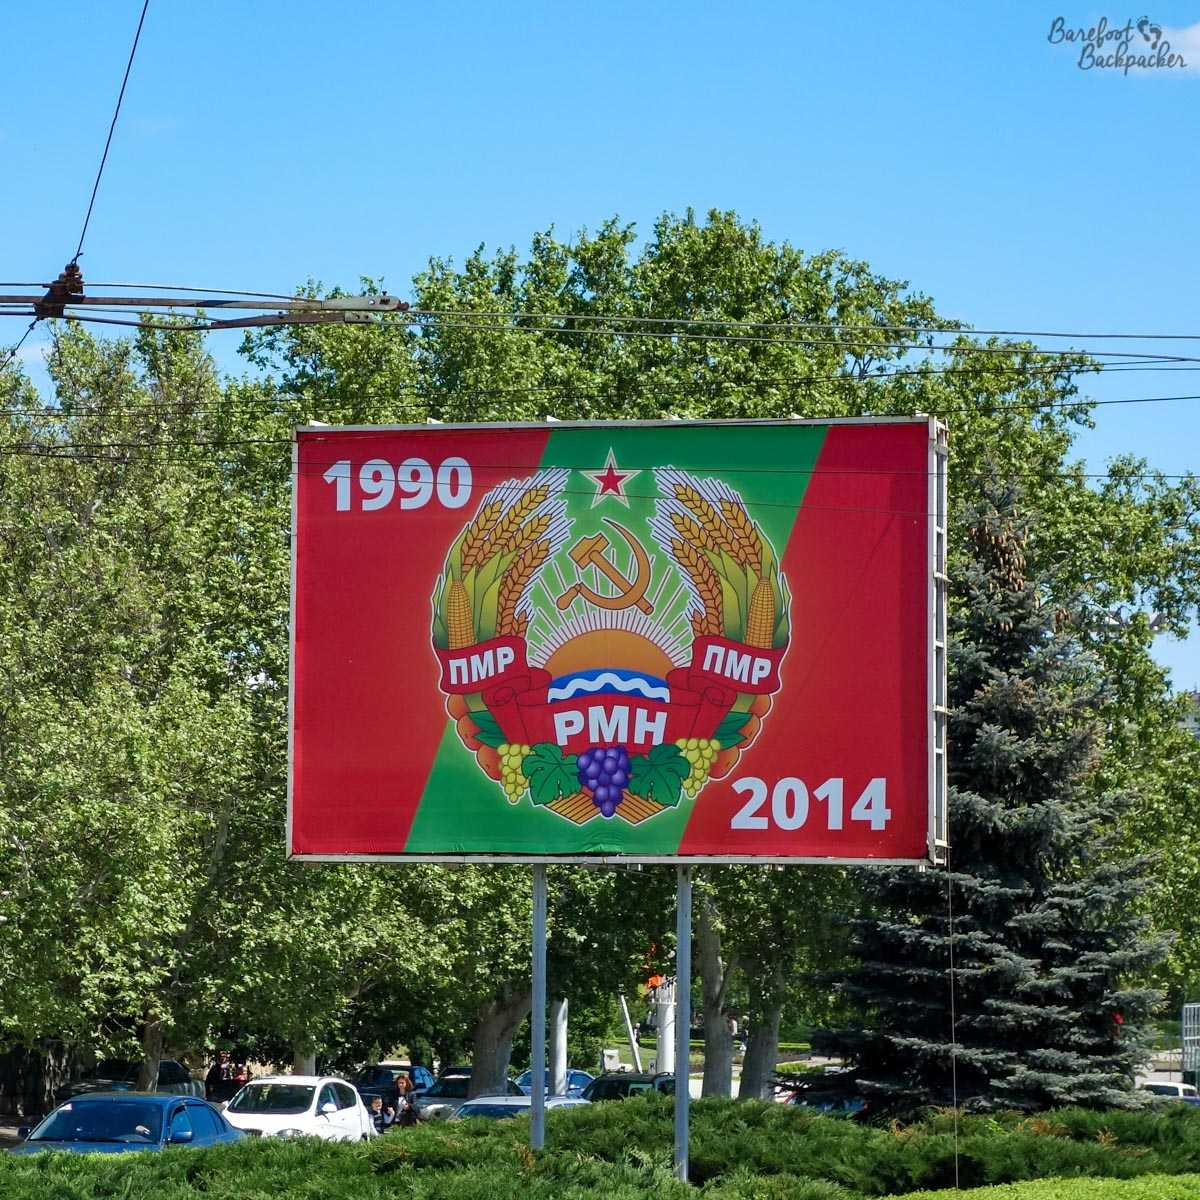 Roadsign / billboard in Tiraspol proclaiming the 24 years since the foundation of Transnistria.